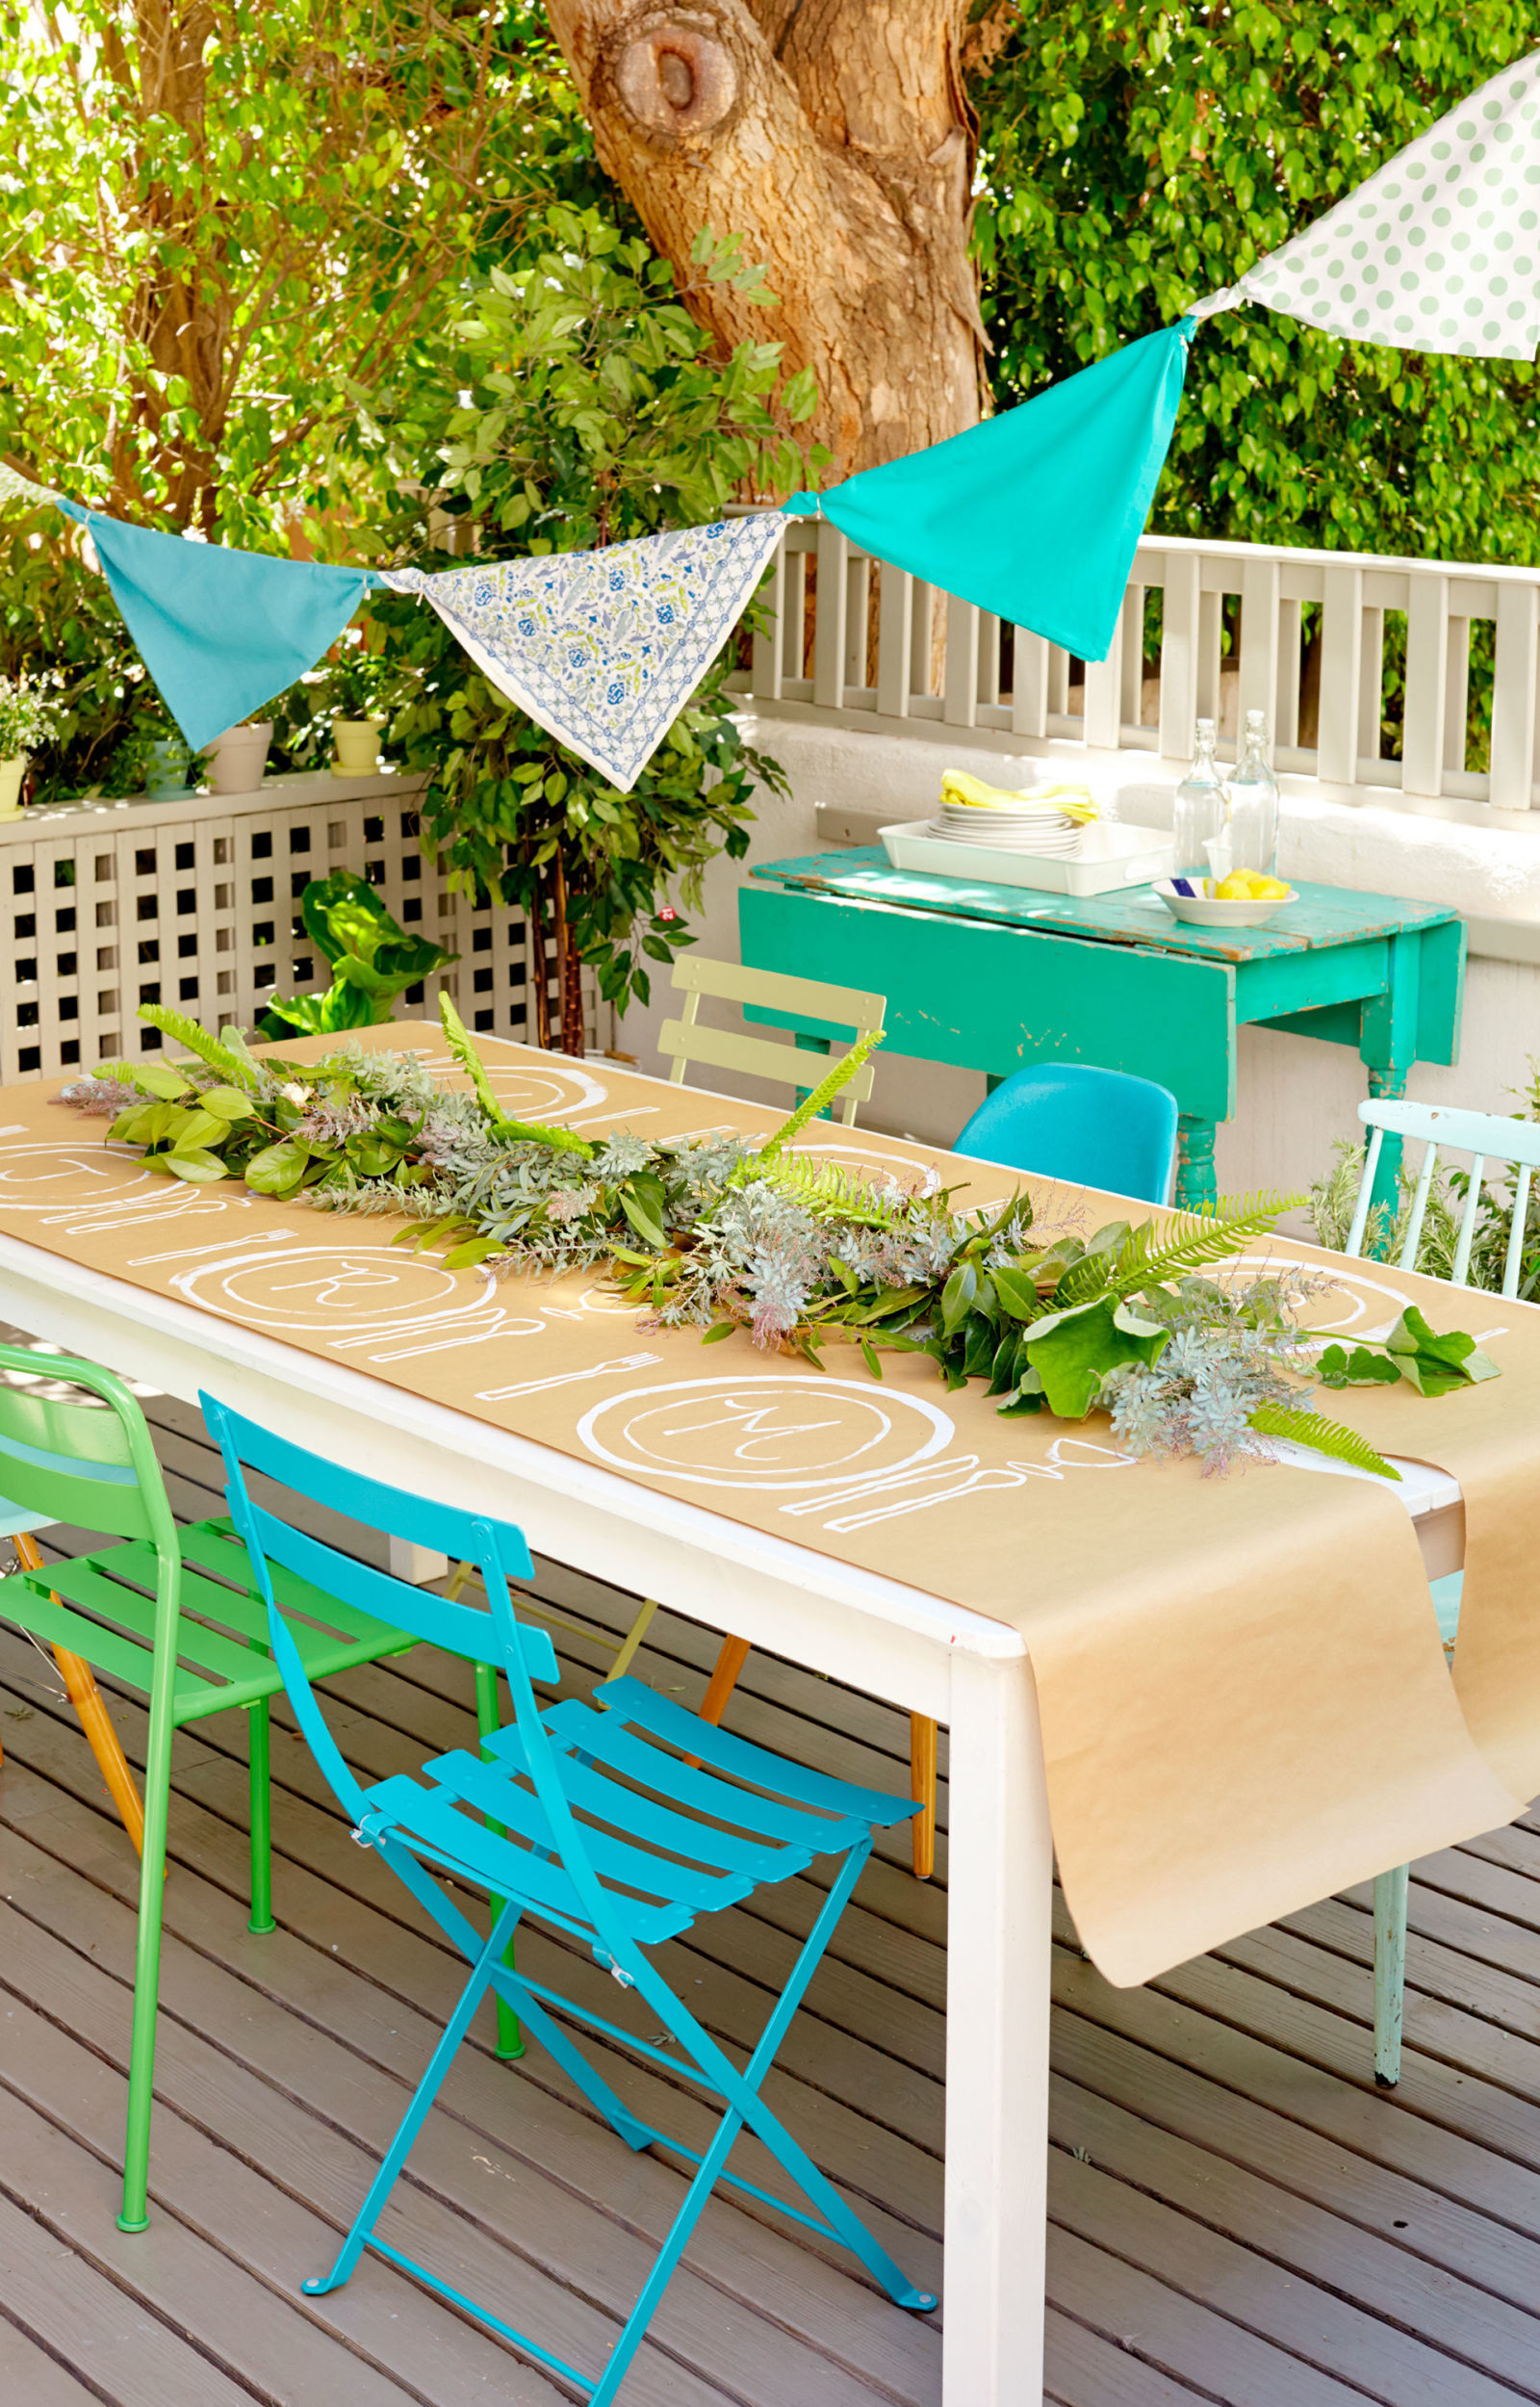 Backyard Party Decor Ideas  Backyard Party Ideas And Decor Summer Entertaining Ideas